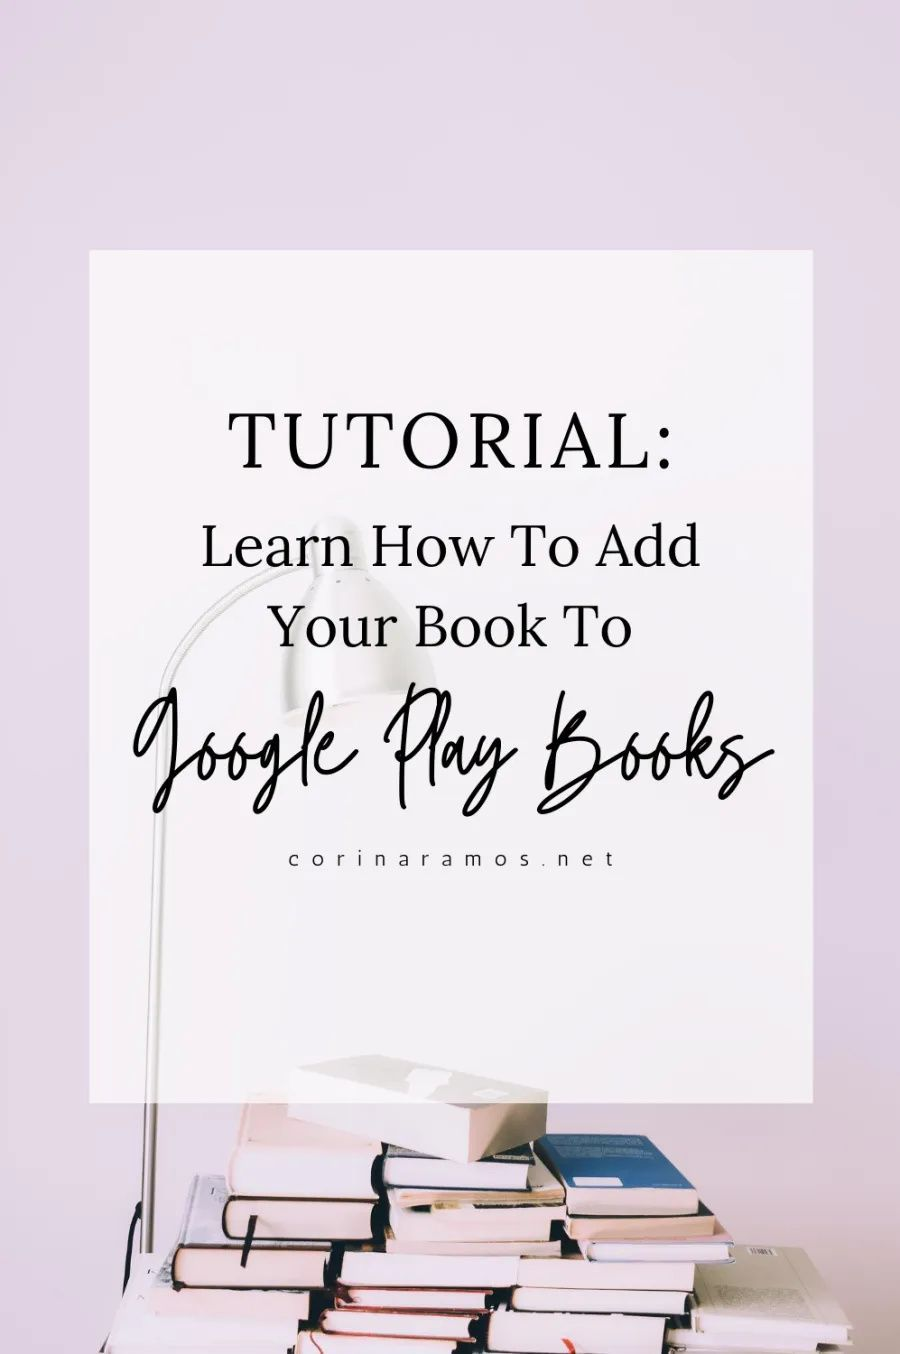 How To Add Your Book Or Ebook To Google Play Books In 2020 Book Marketing Plan Play Book Book Marketing